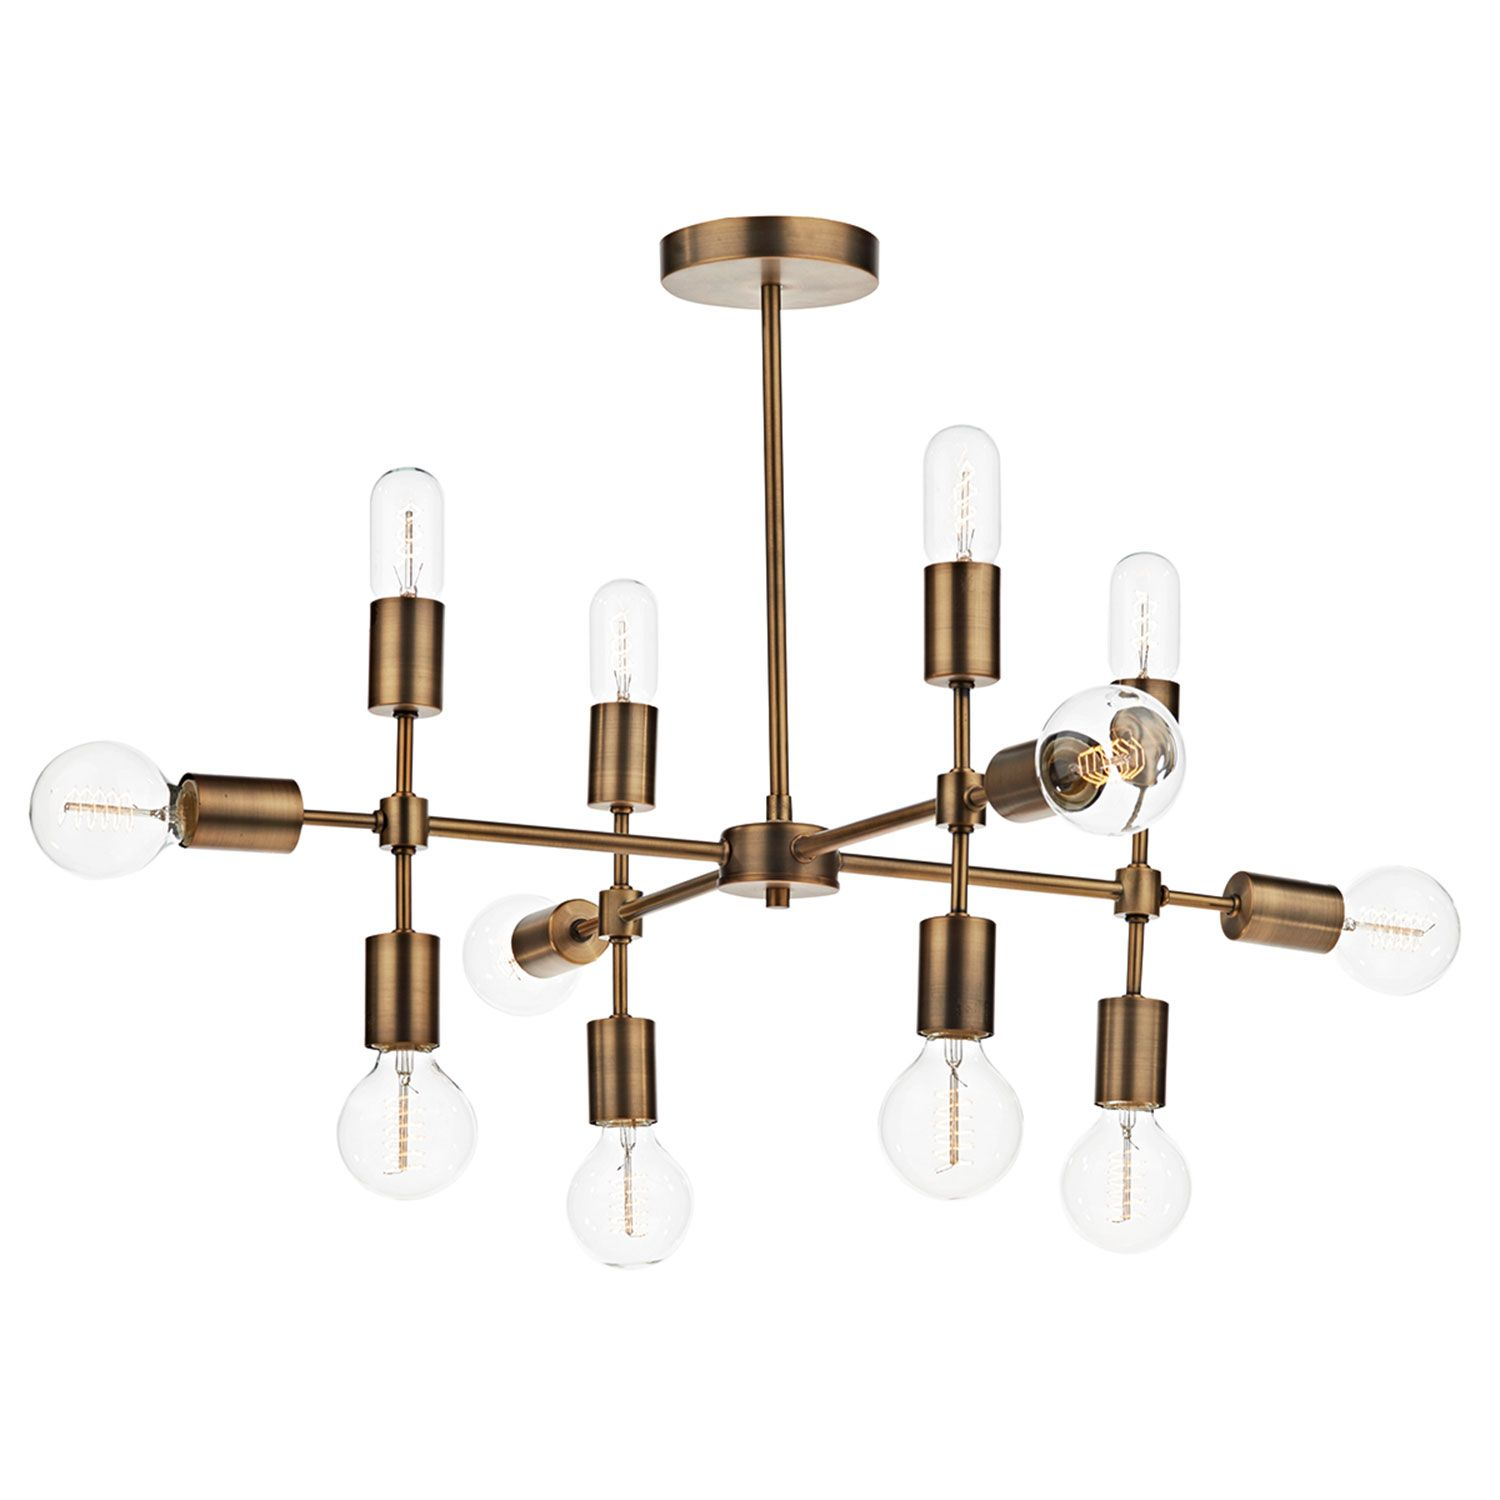 Dar bombazine 7 light suspension light chandeliers online dar lighting code 12 light pendant old gold available from online lighting shop for only save fast free delivery across the uk and ireland on all orders arubaitofo Choice Image